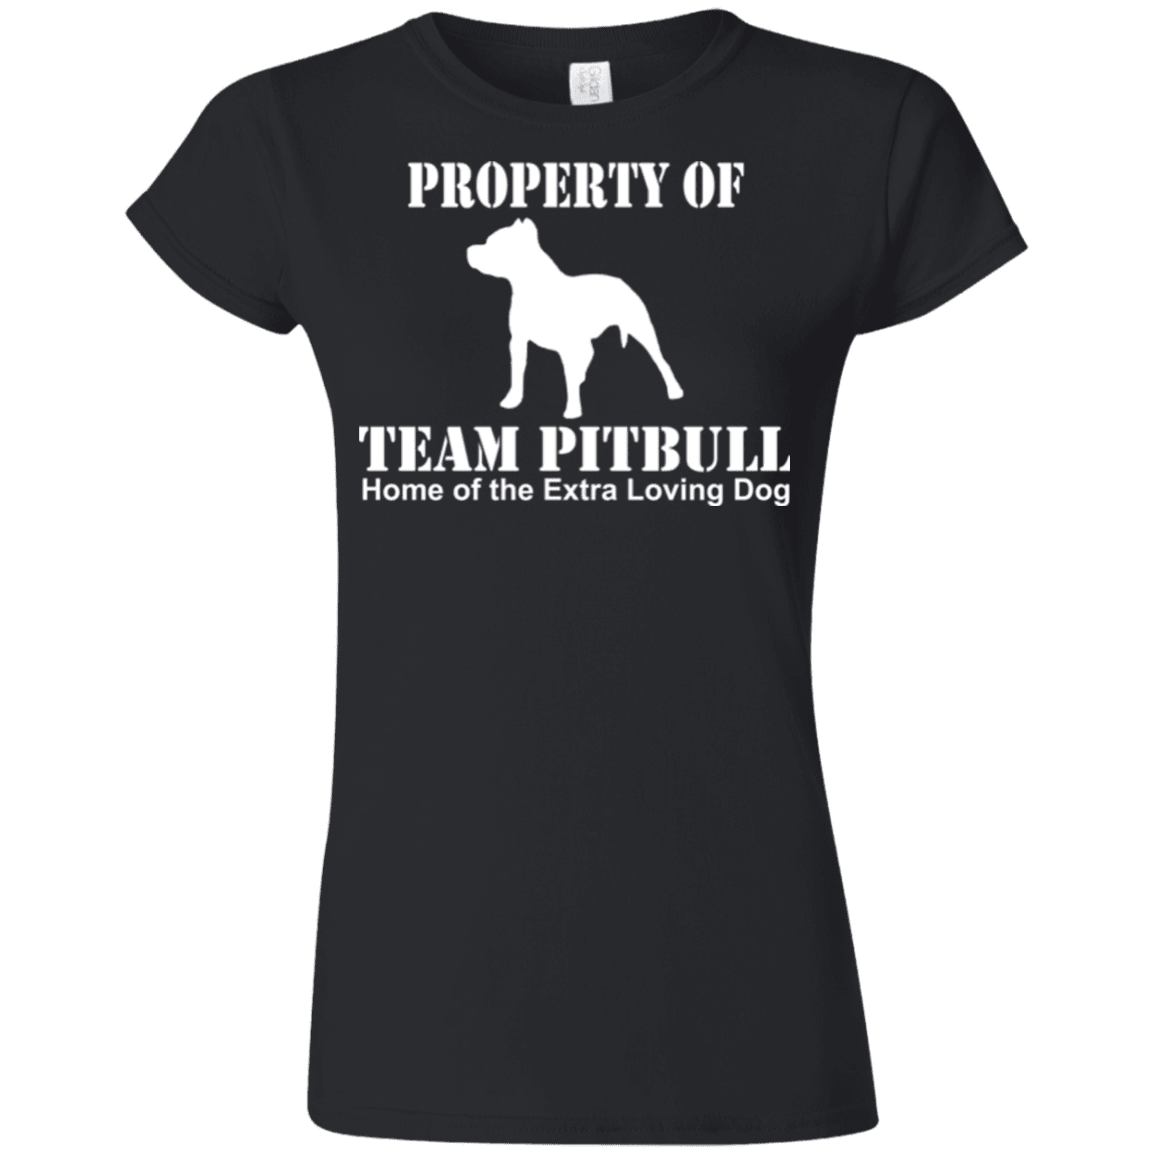 Team Pit Bull - G640L Gildan Softstyle Ladies' T-Shirt Dark Black Small - Little Pit Shop